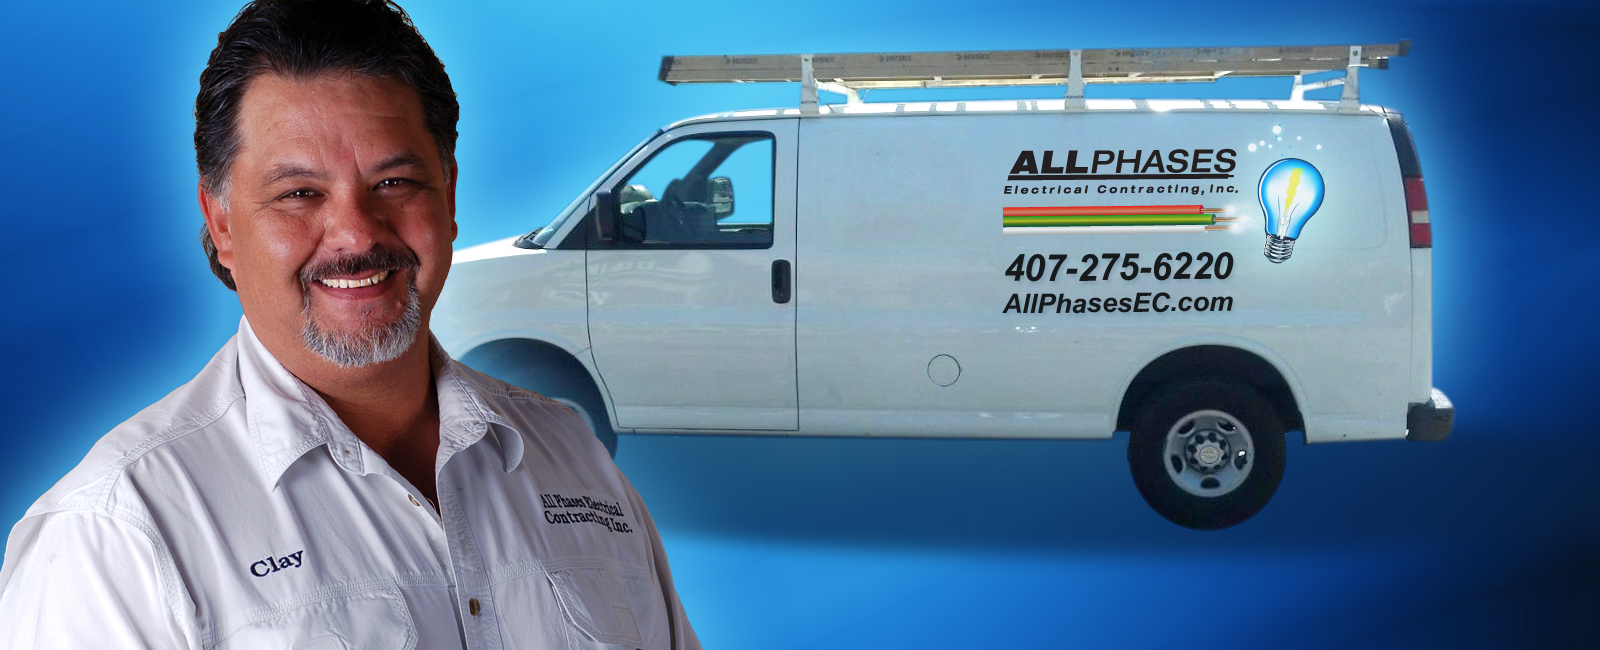 All Phases Electrical Contracting Inc logo